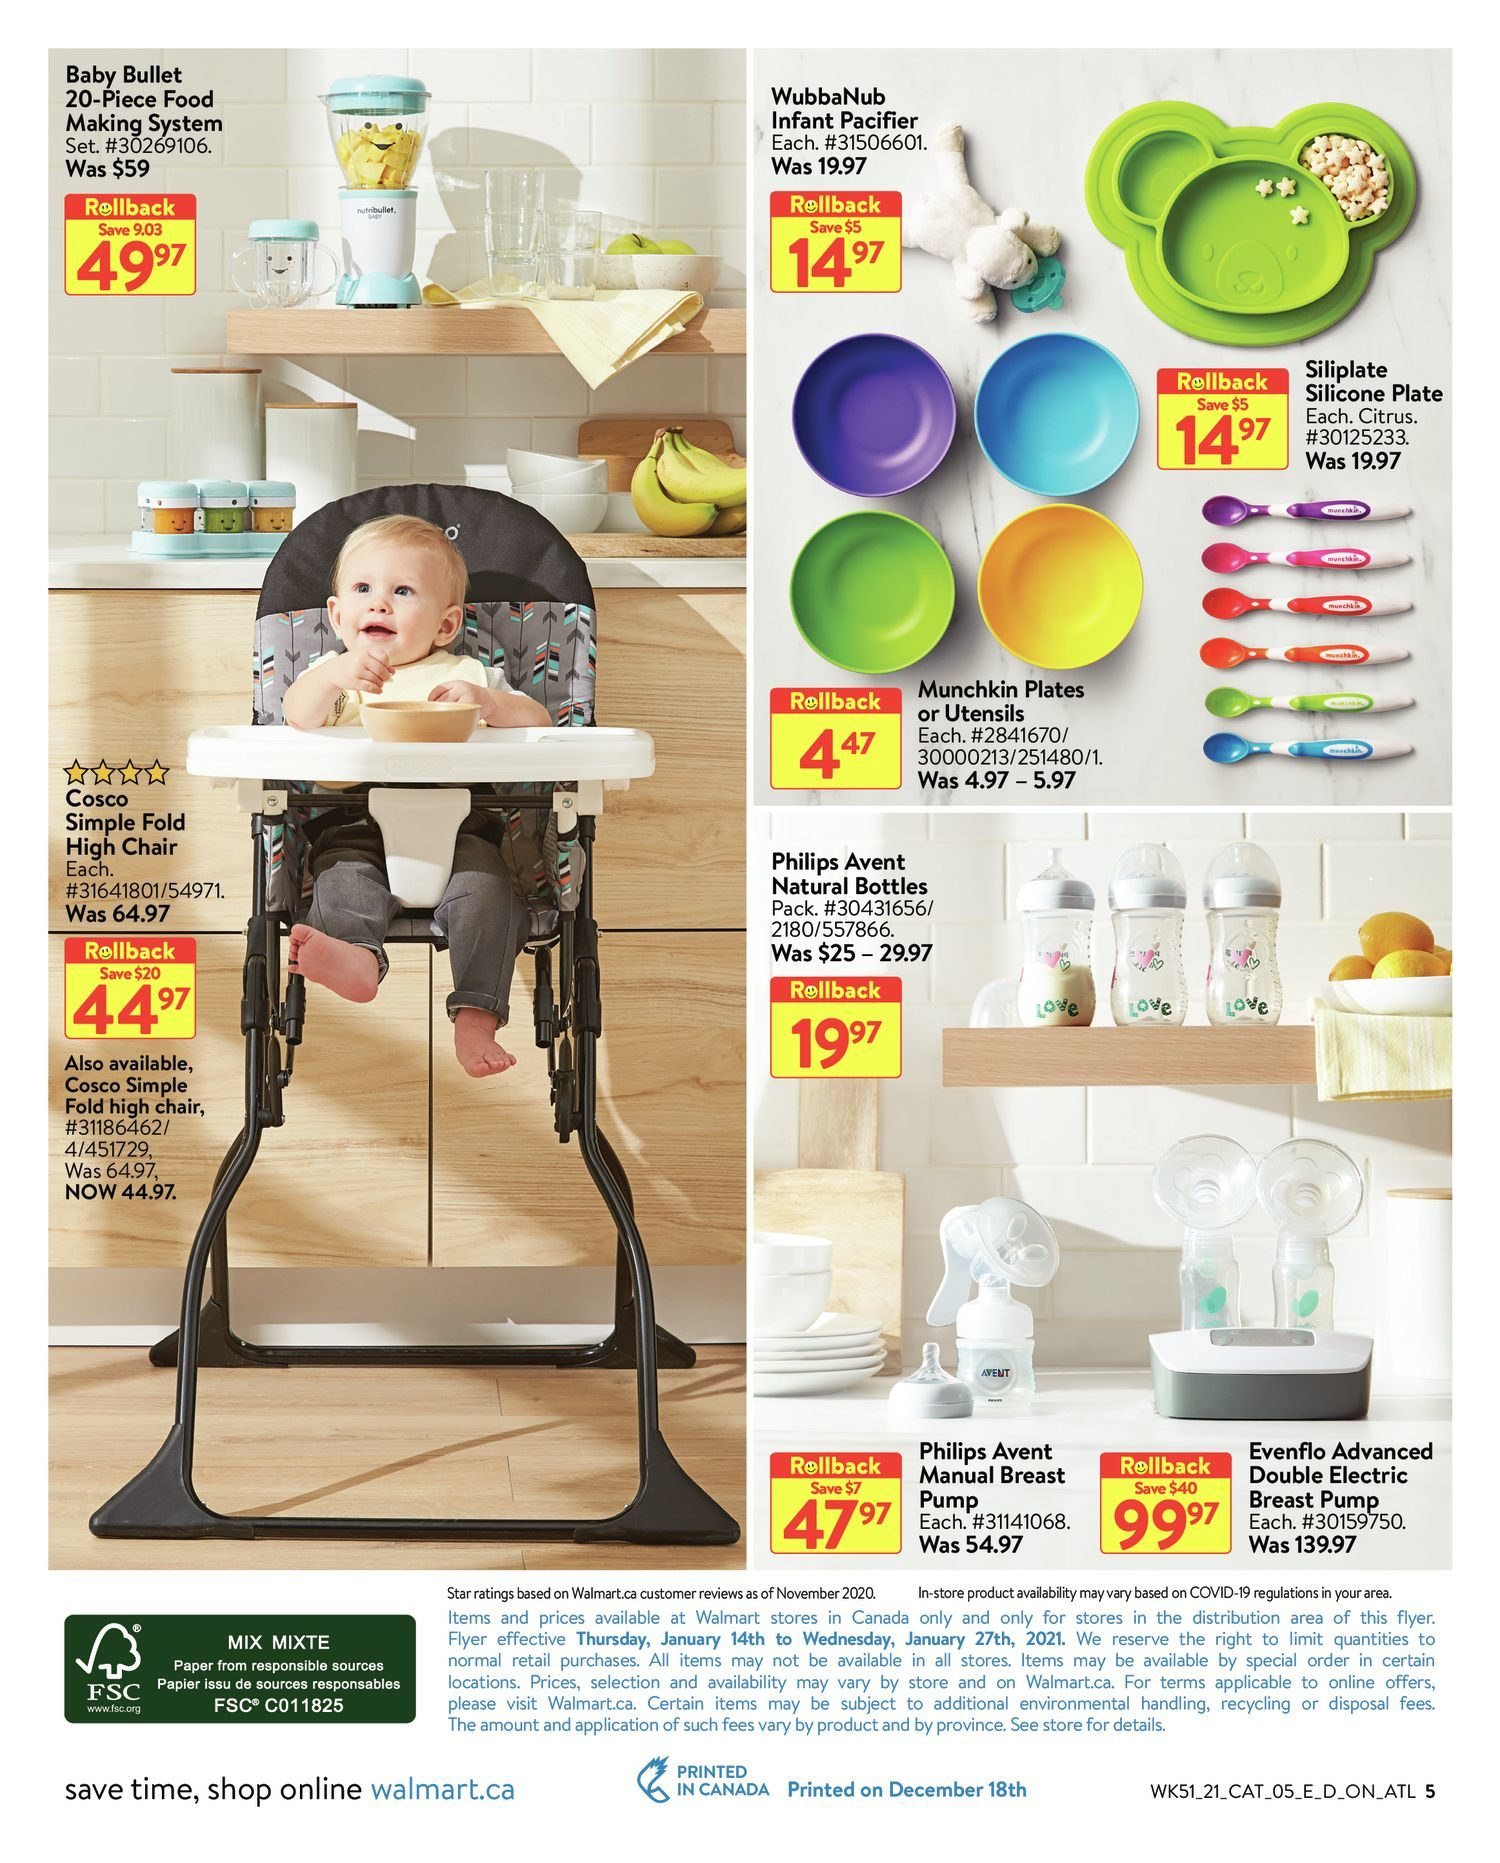 Walmart - Baby Book - Page 5